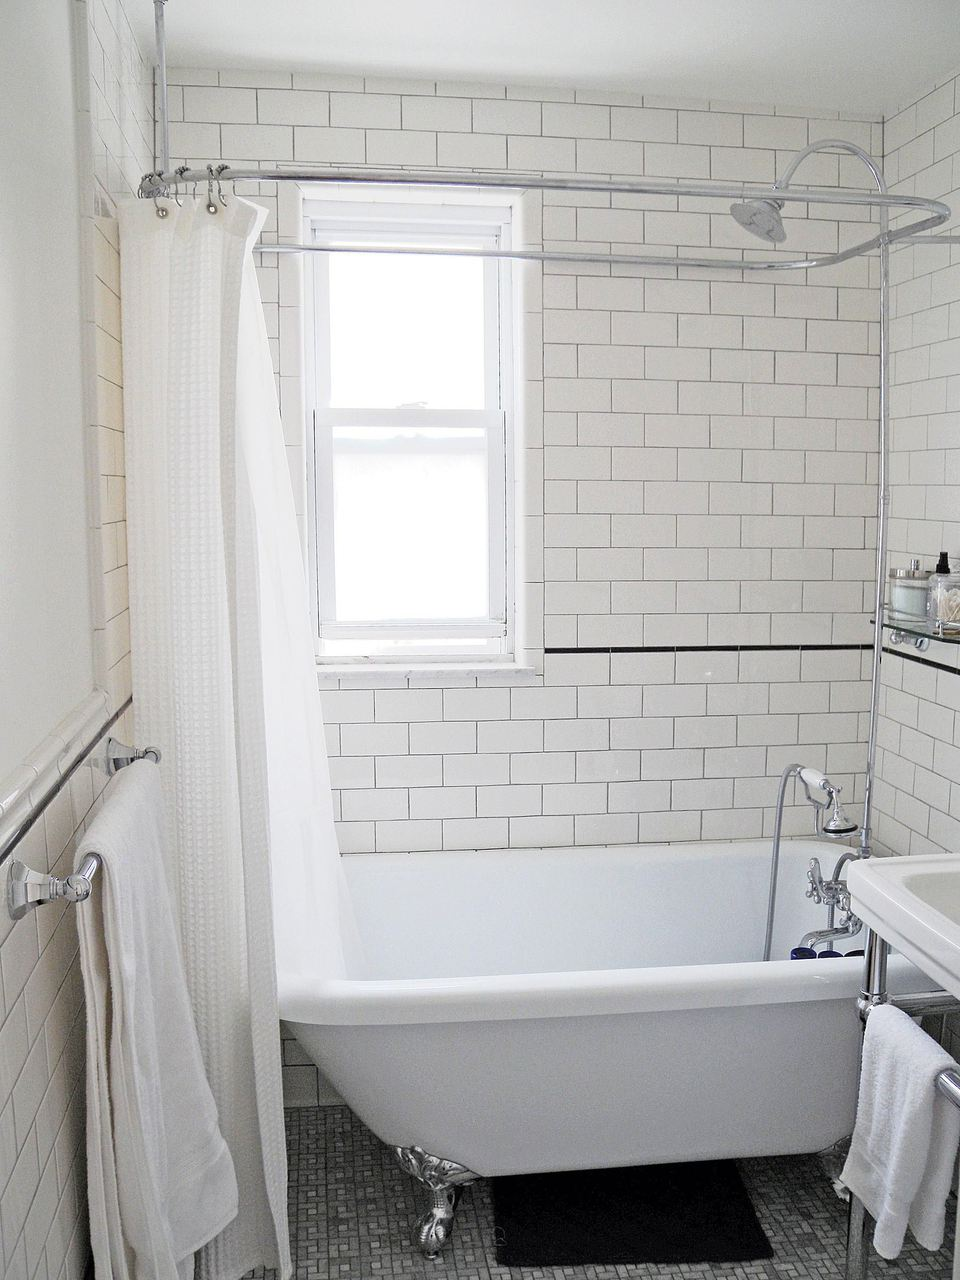 White Subway Tiles and Clawfoot Tub in Remodeled Bathroom